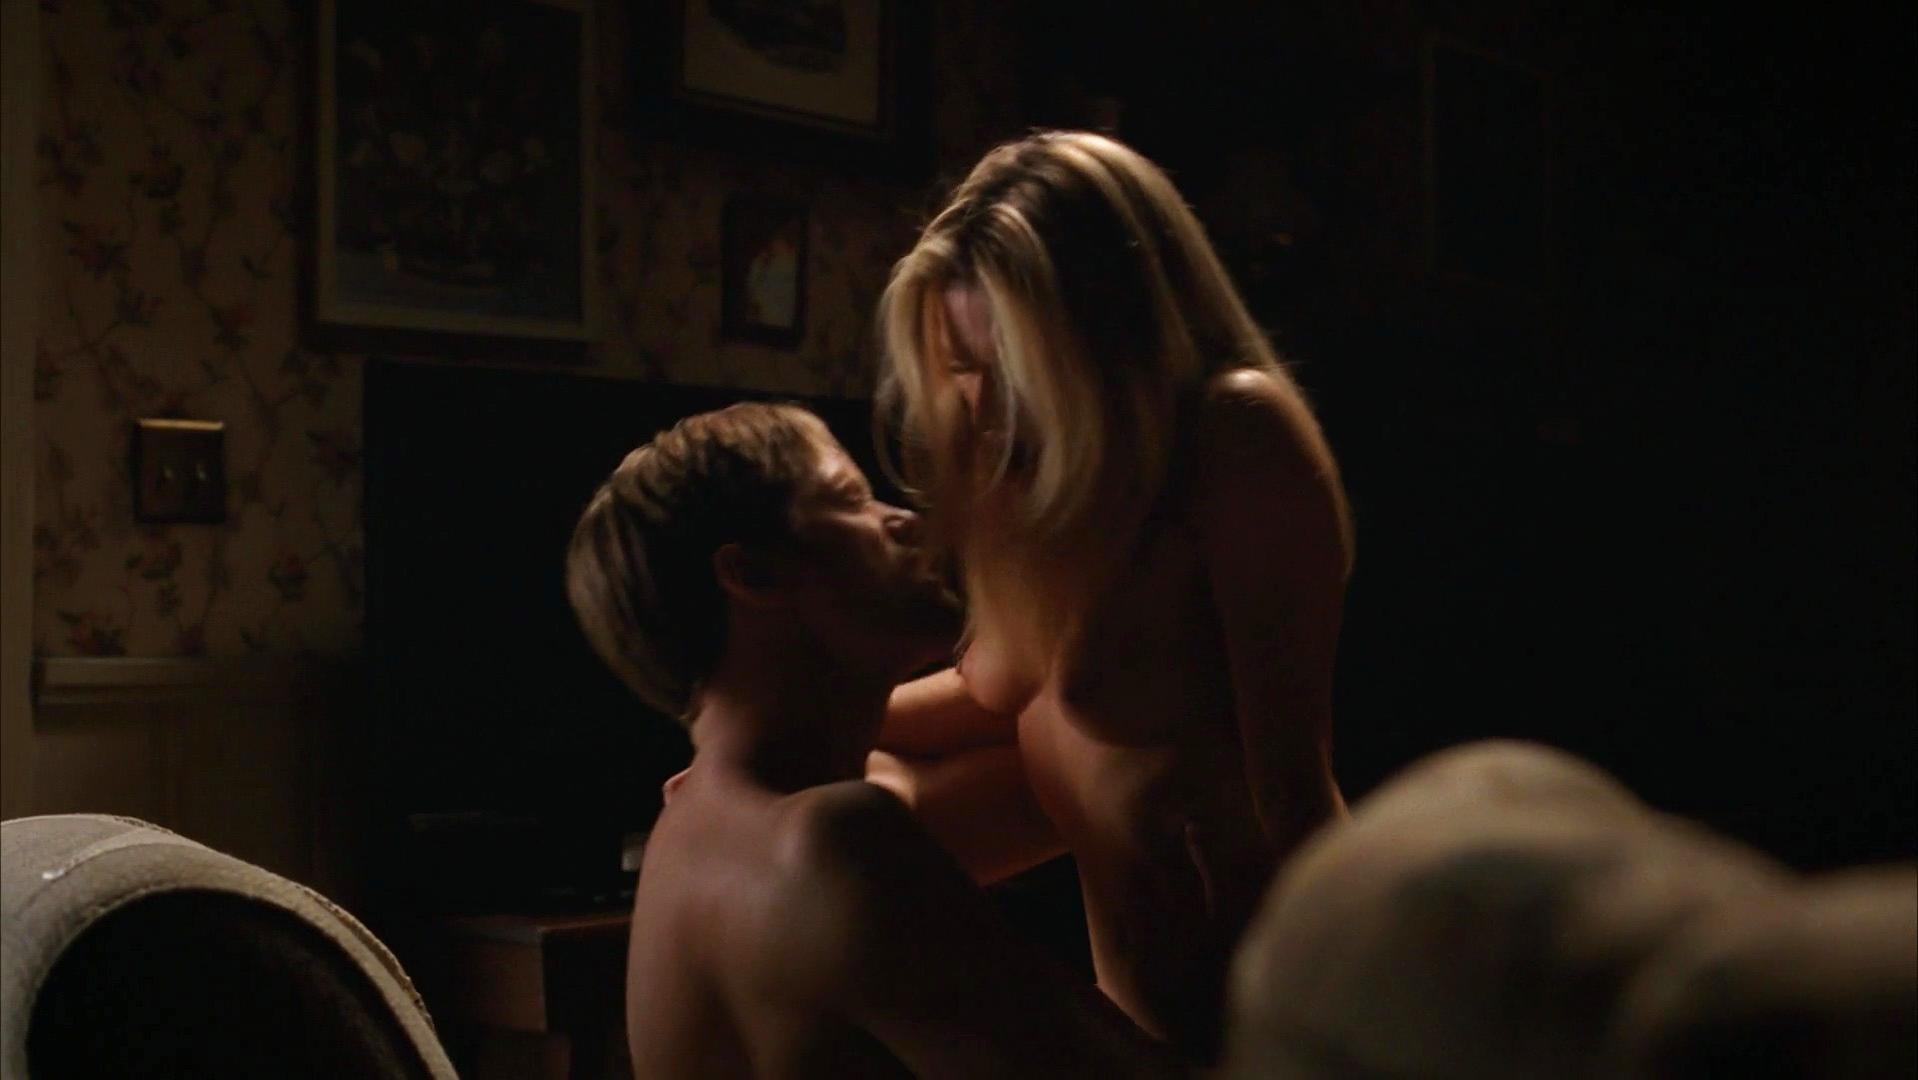 Anna Paquin nude - True Blood s04 (2011)